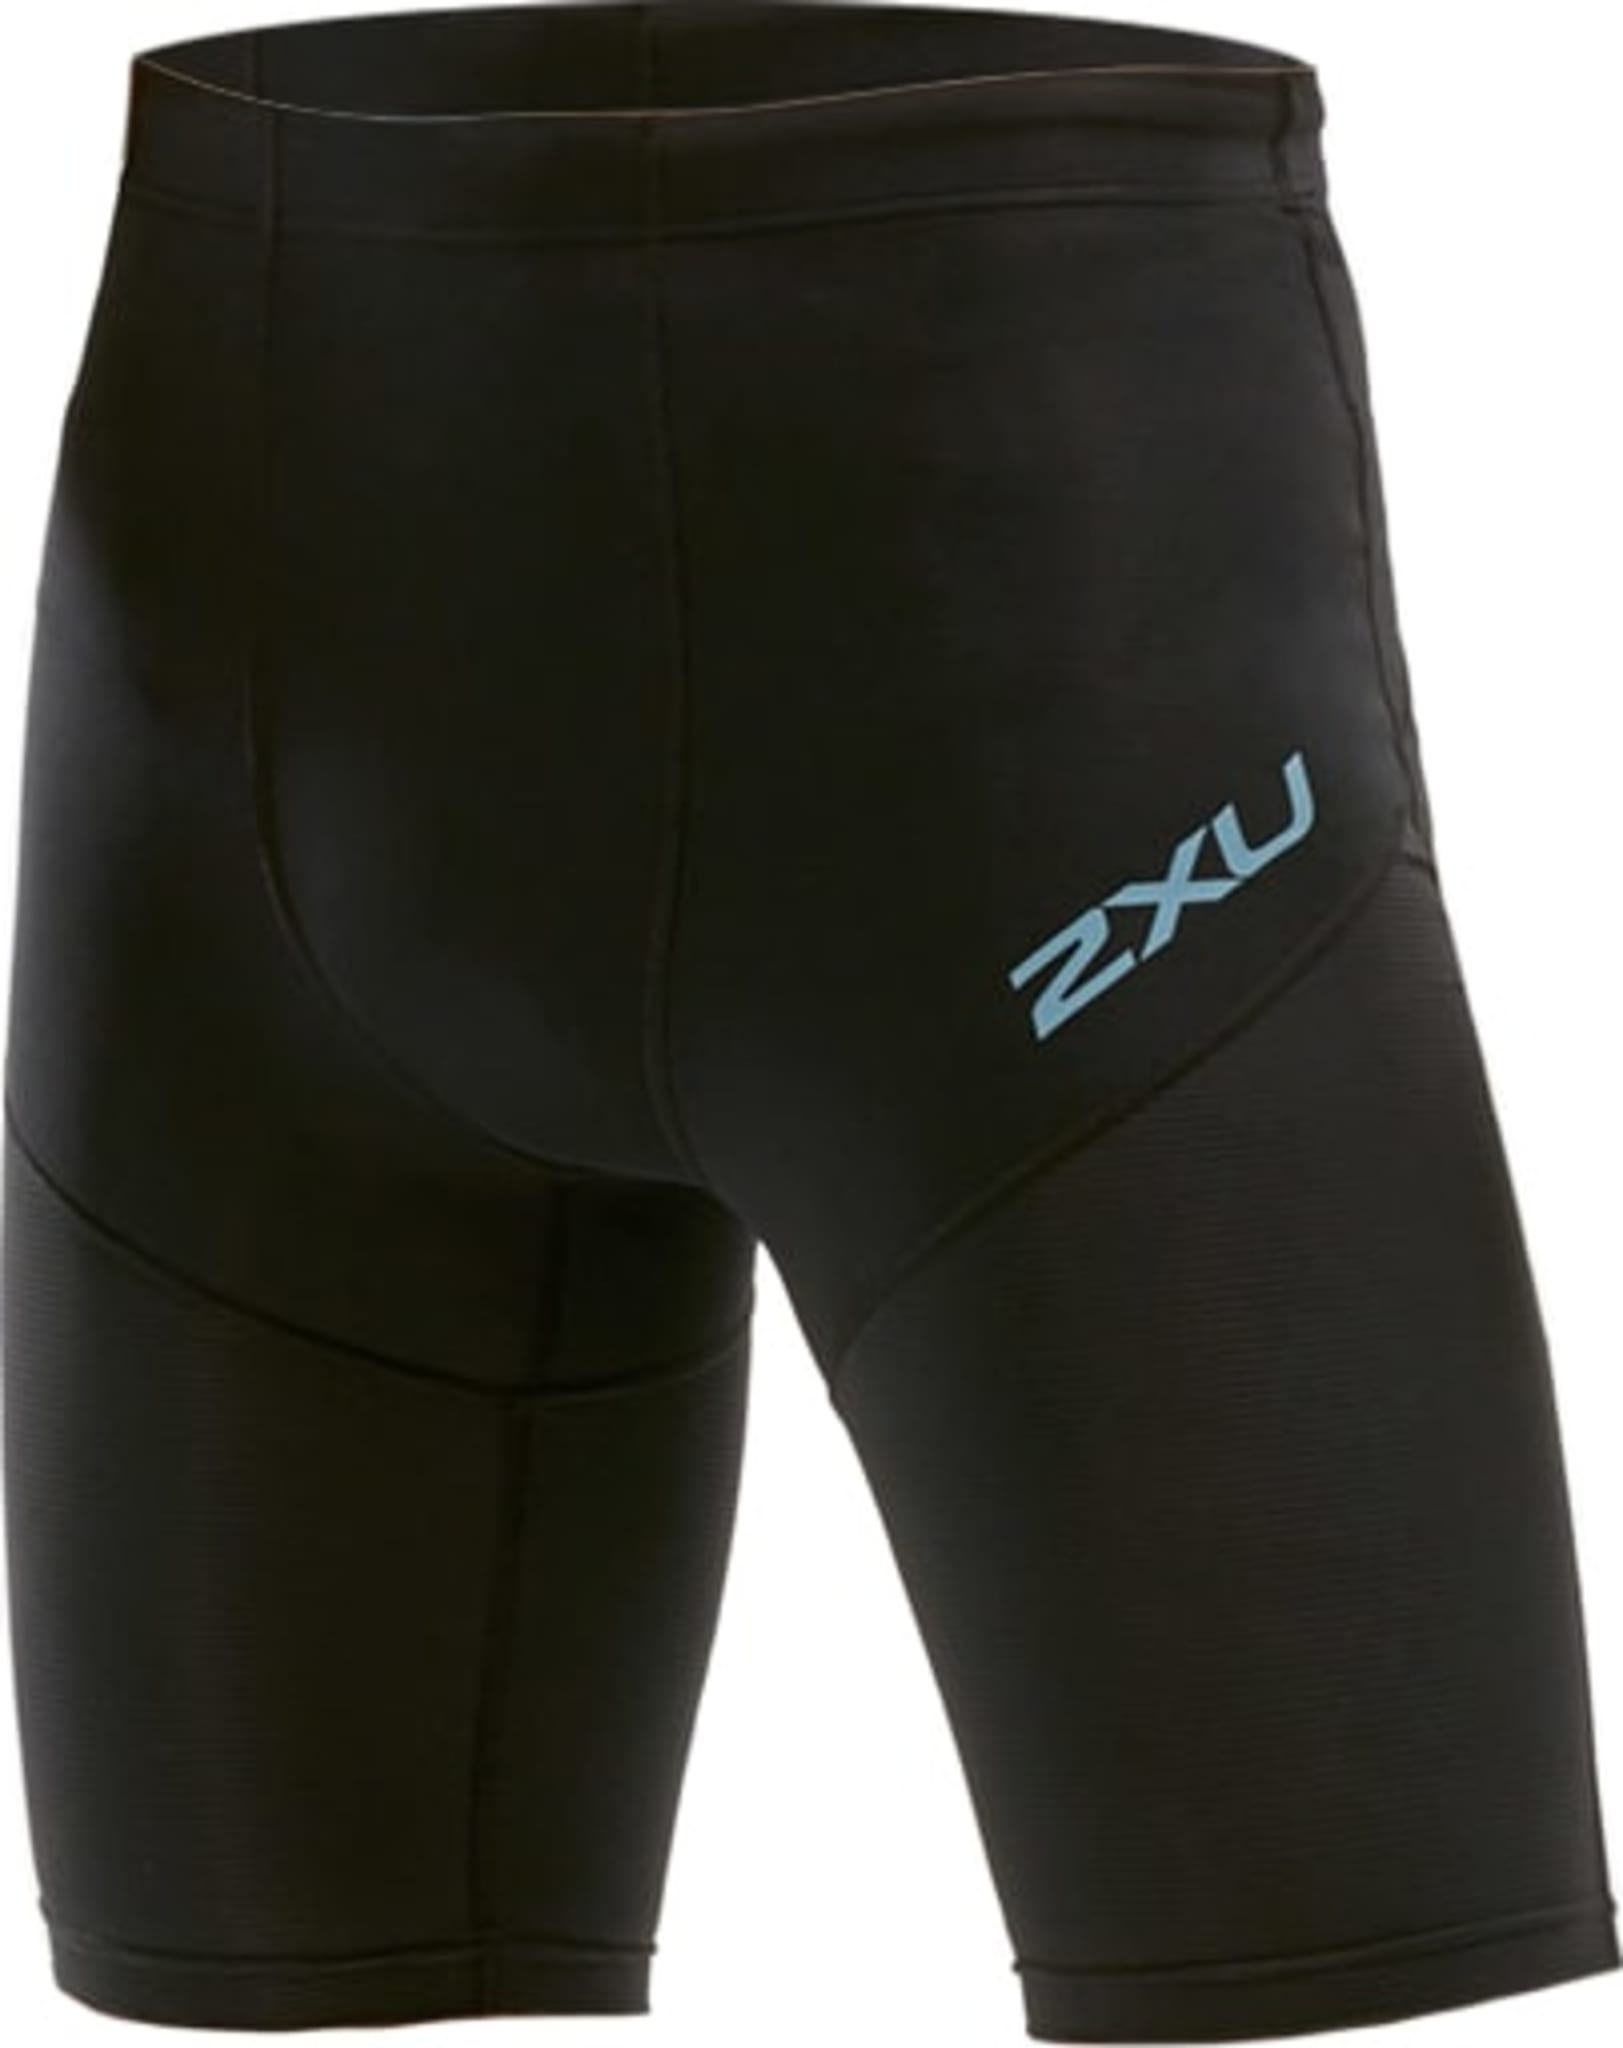 Run Dash Compression Shorts